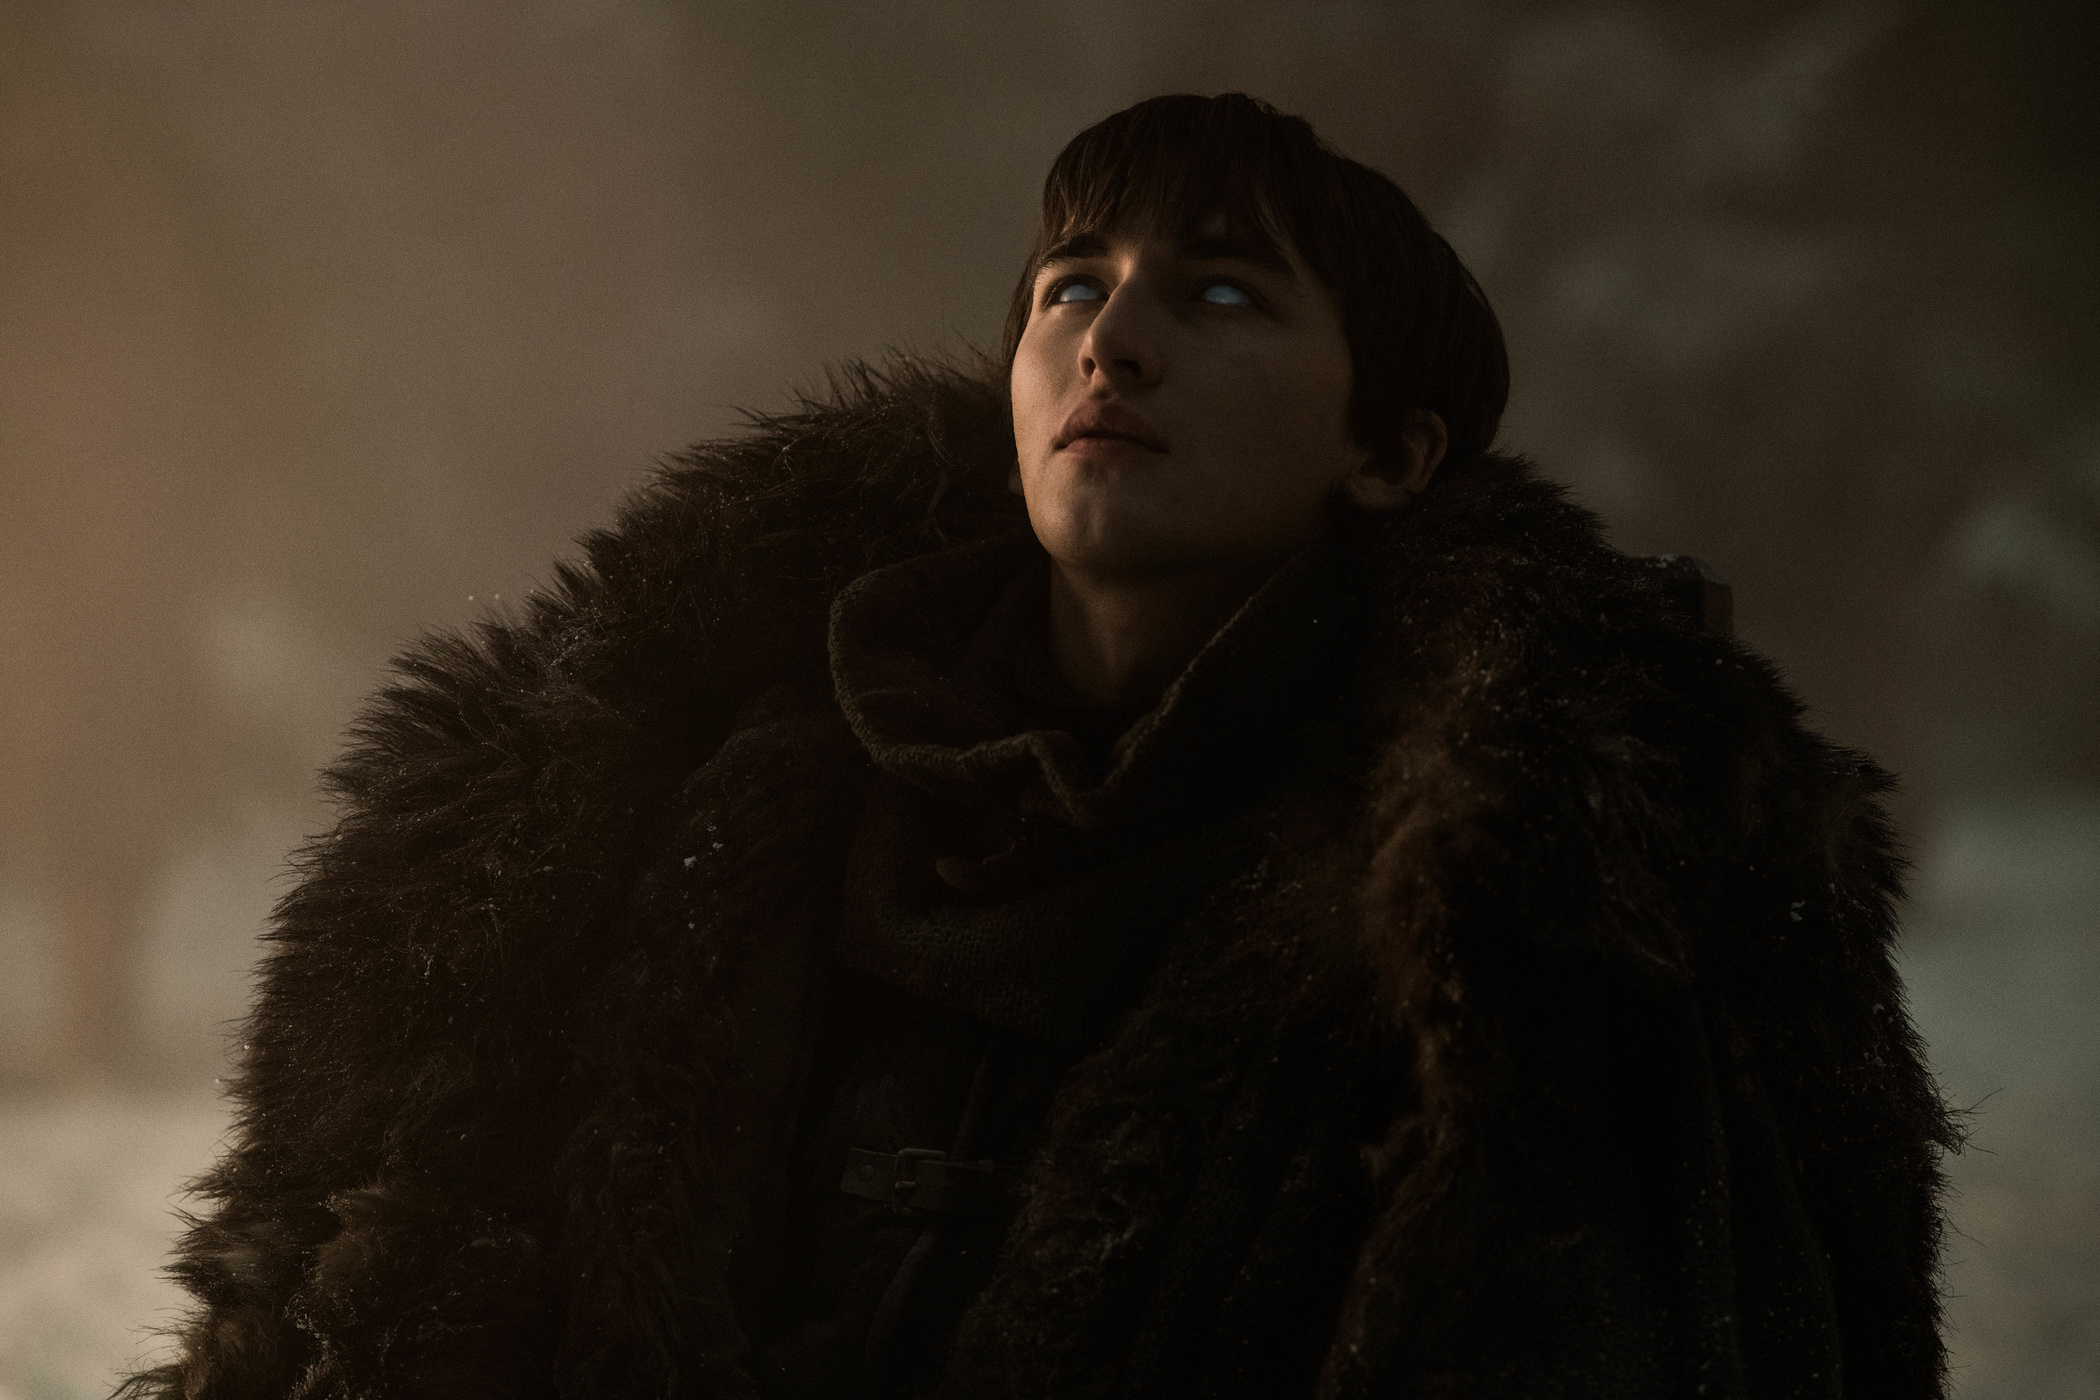 What are you doing, Bran?